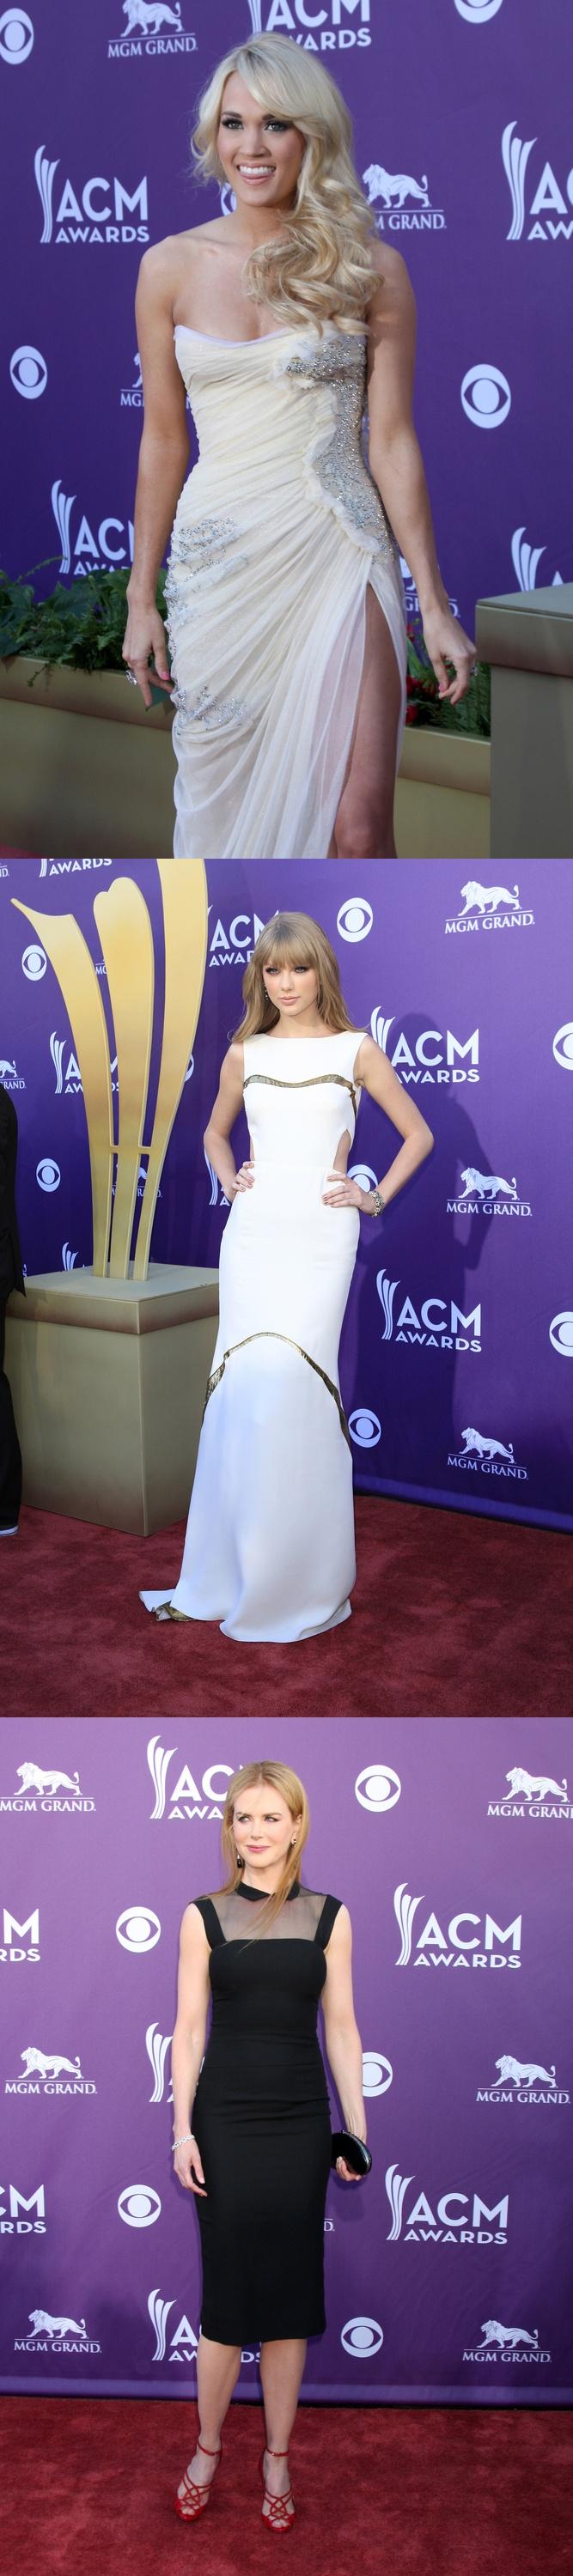 Red carpet photographs taken at the 47th Annual Academy Of Country Music Awards 2012...